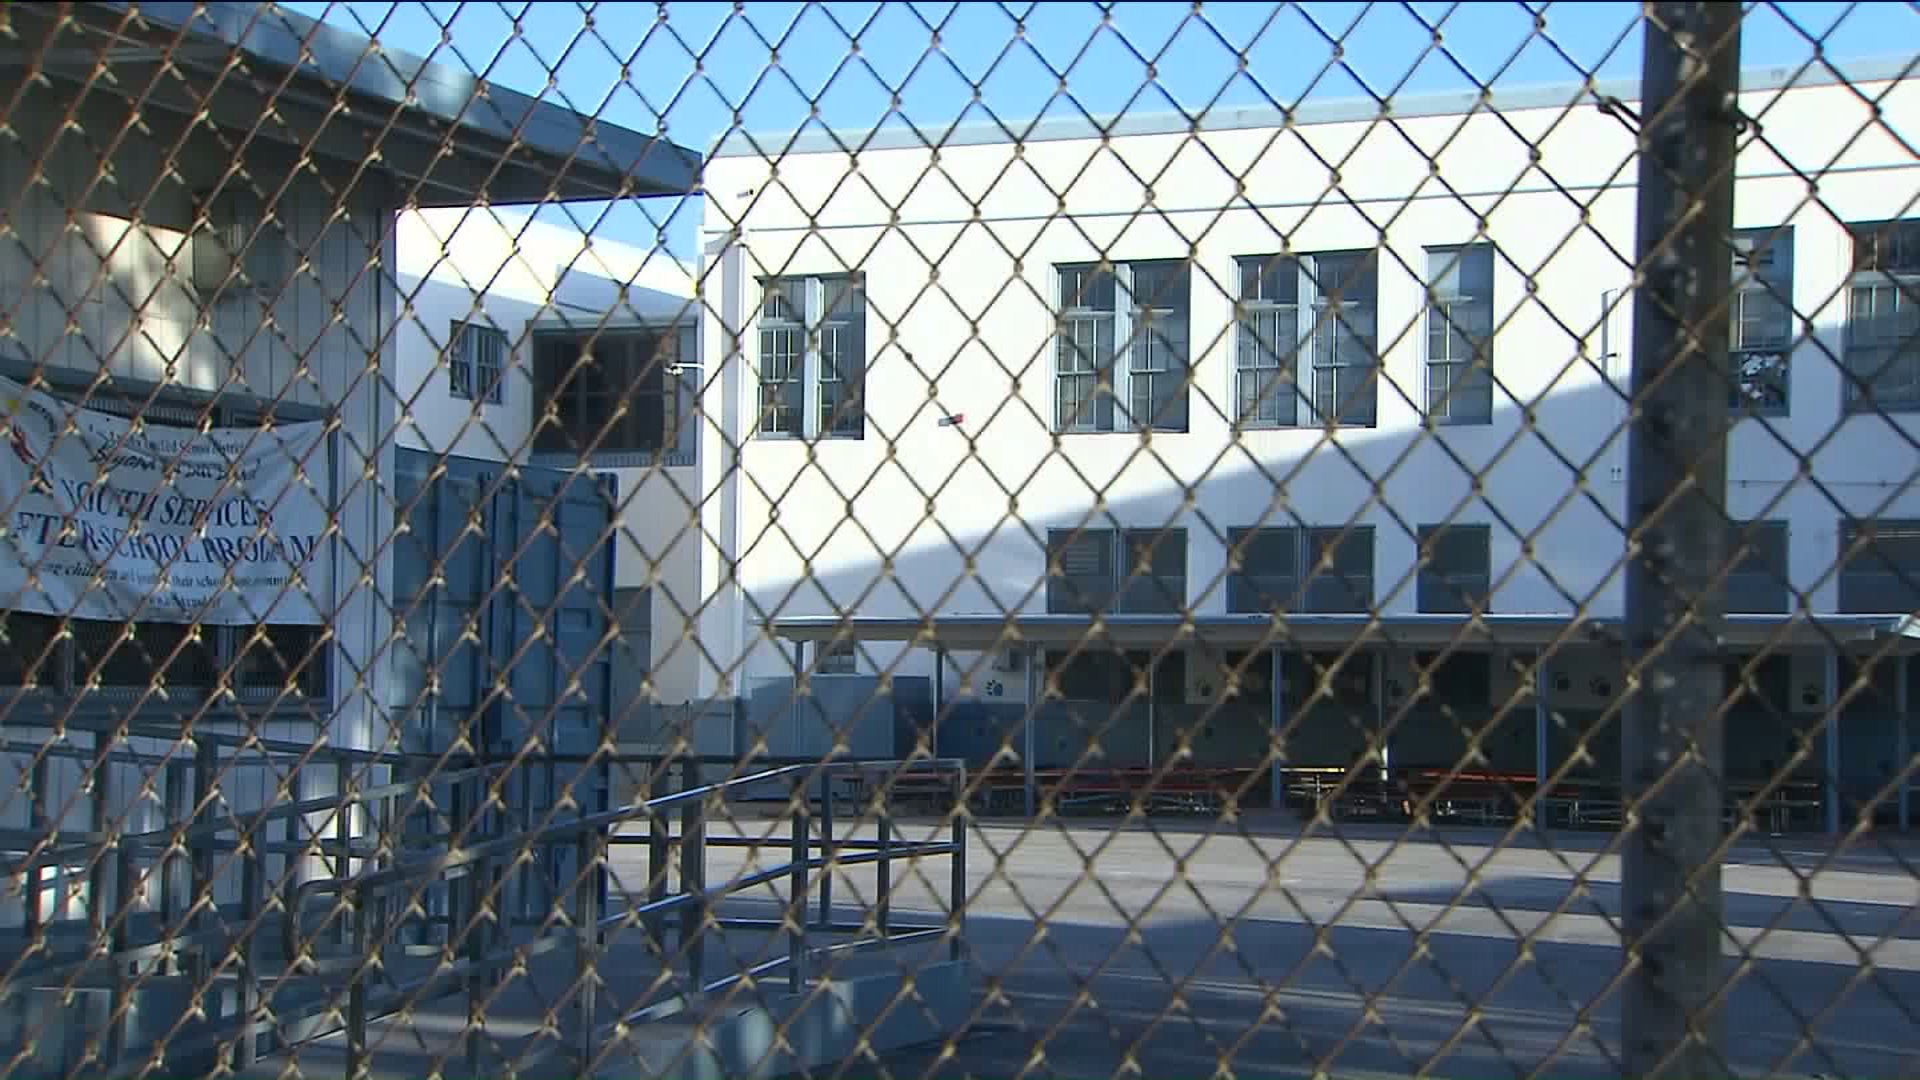 Boy Hospitalized After Being Stabbed at Elementary School